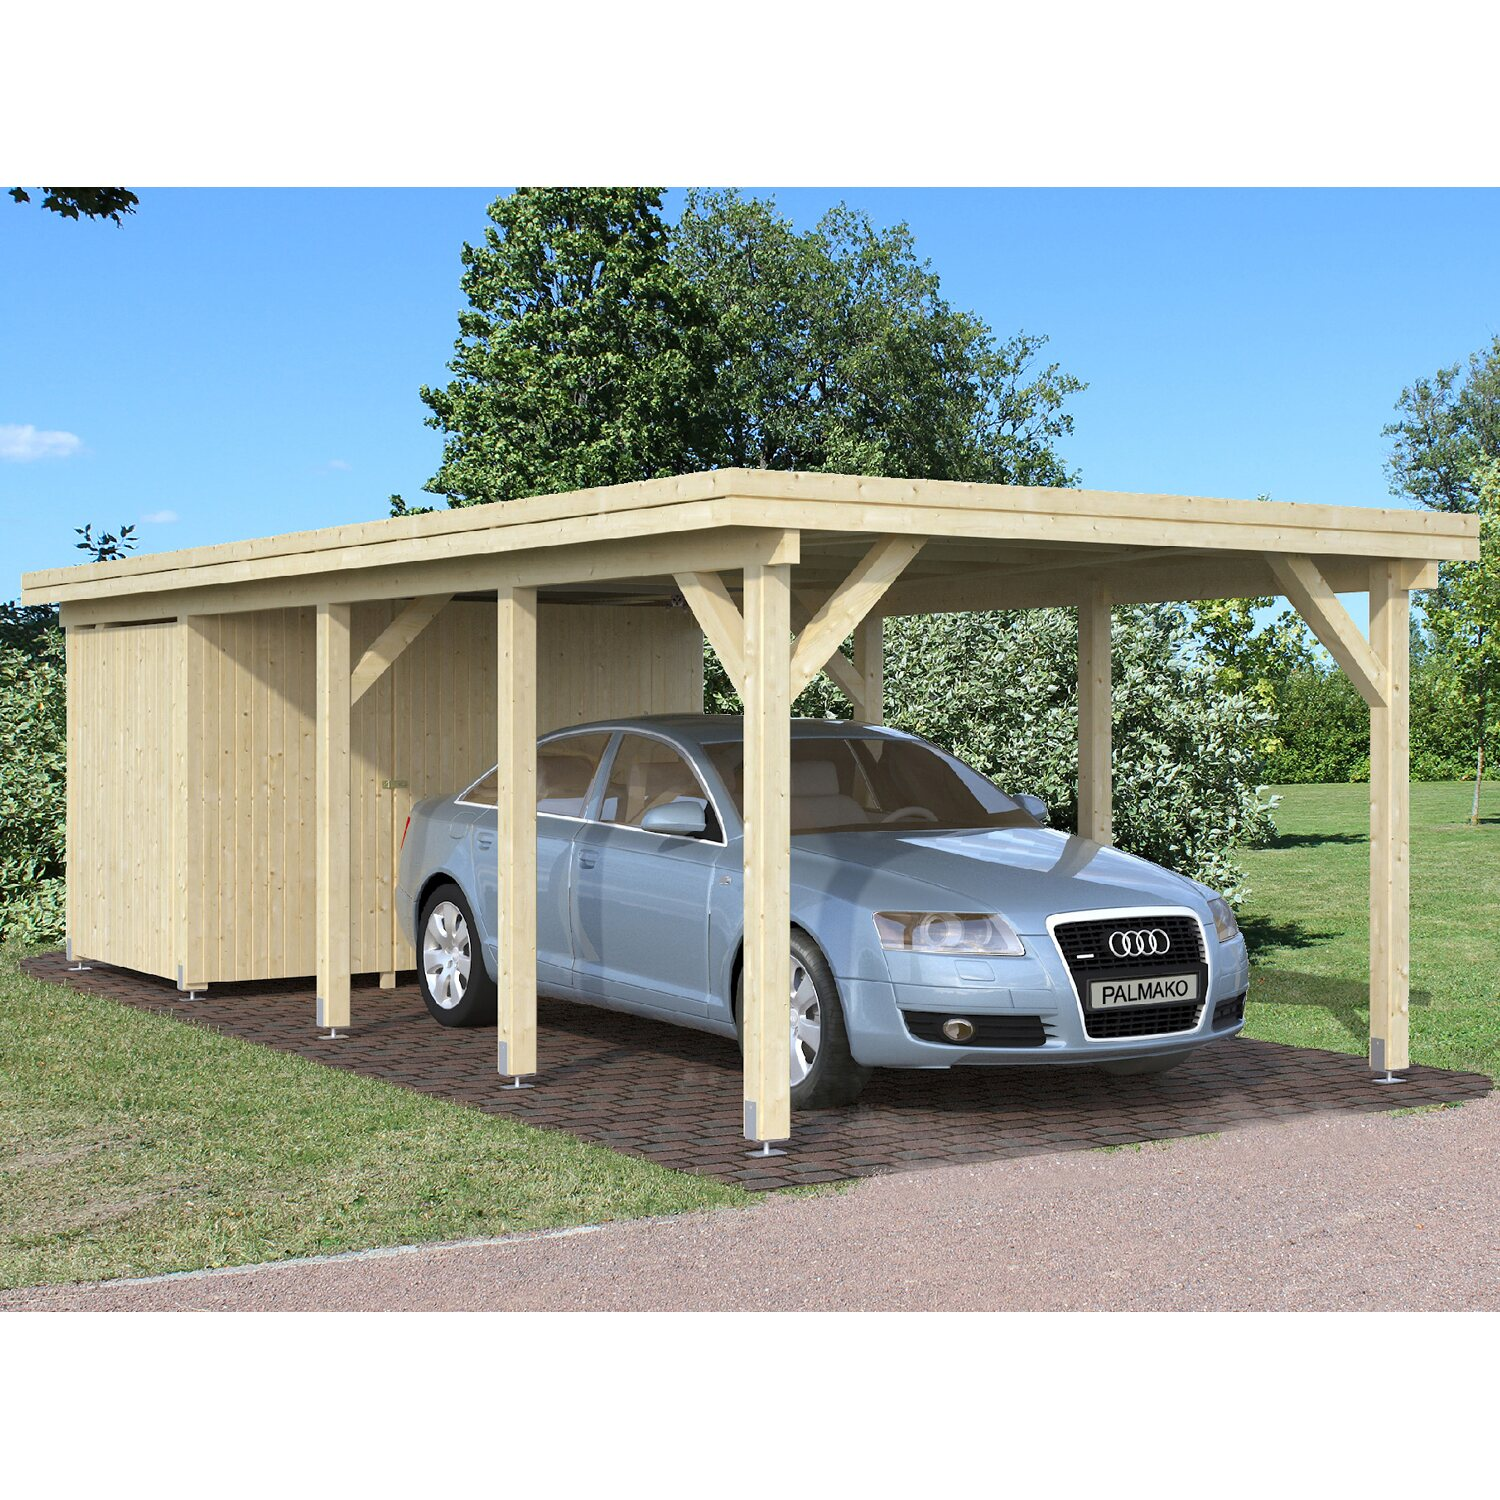 palmako carport karl 360 cm x 762 cm kaufen bei obi. Black Bedroom Furniture Sets. Home Design Ideas